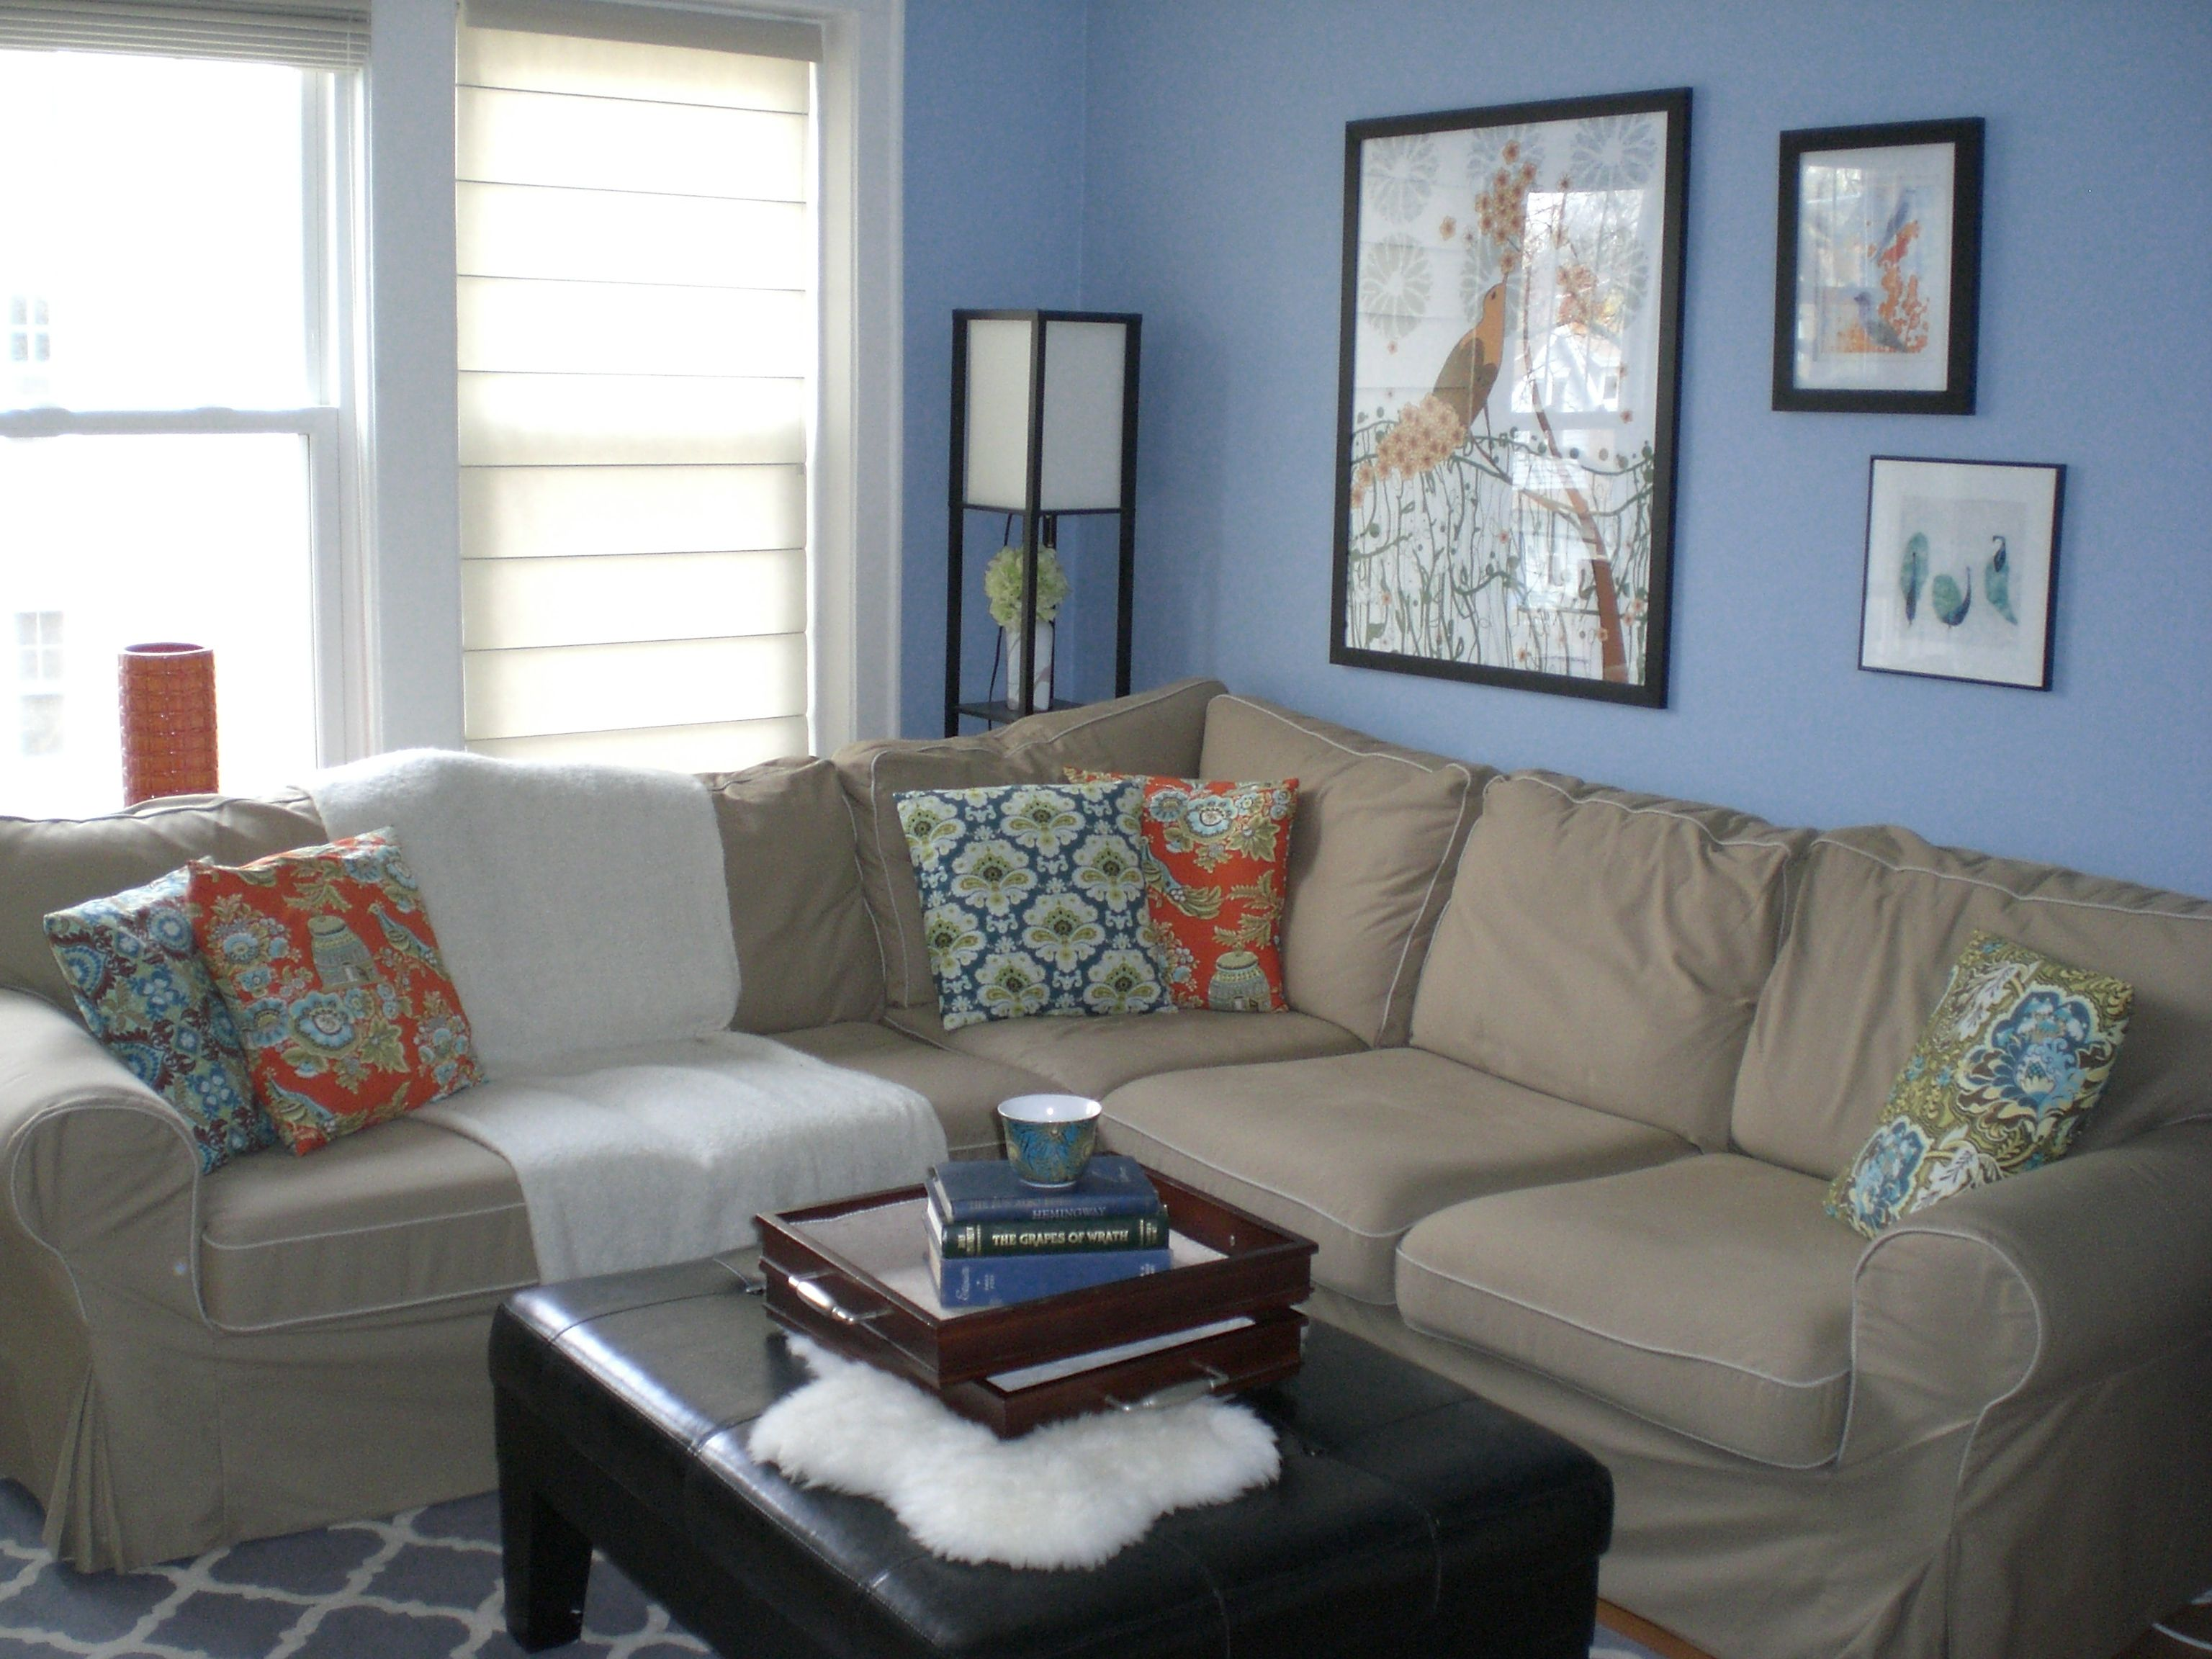 Light blue paint colors for living room xrkotdh living Color ideas for a living room